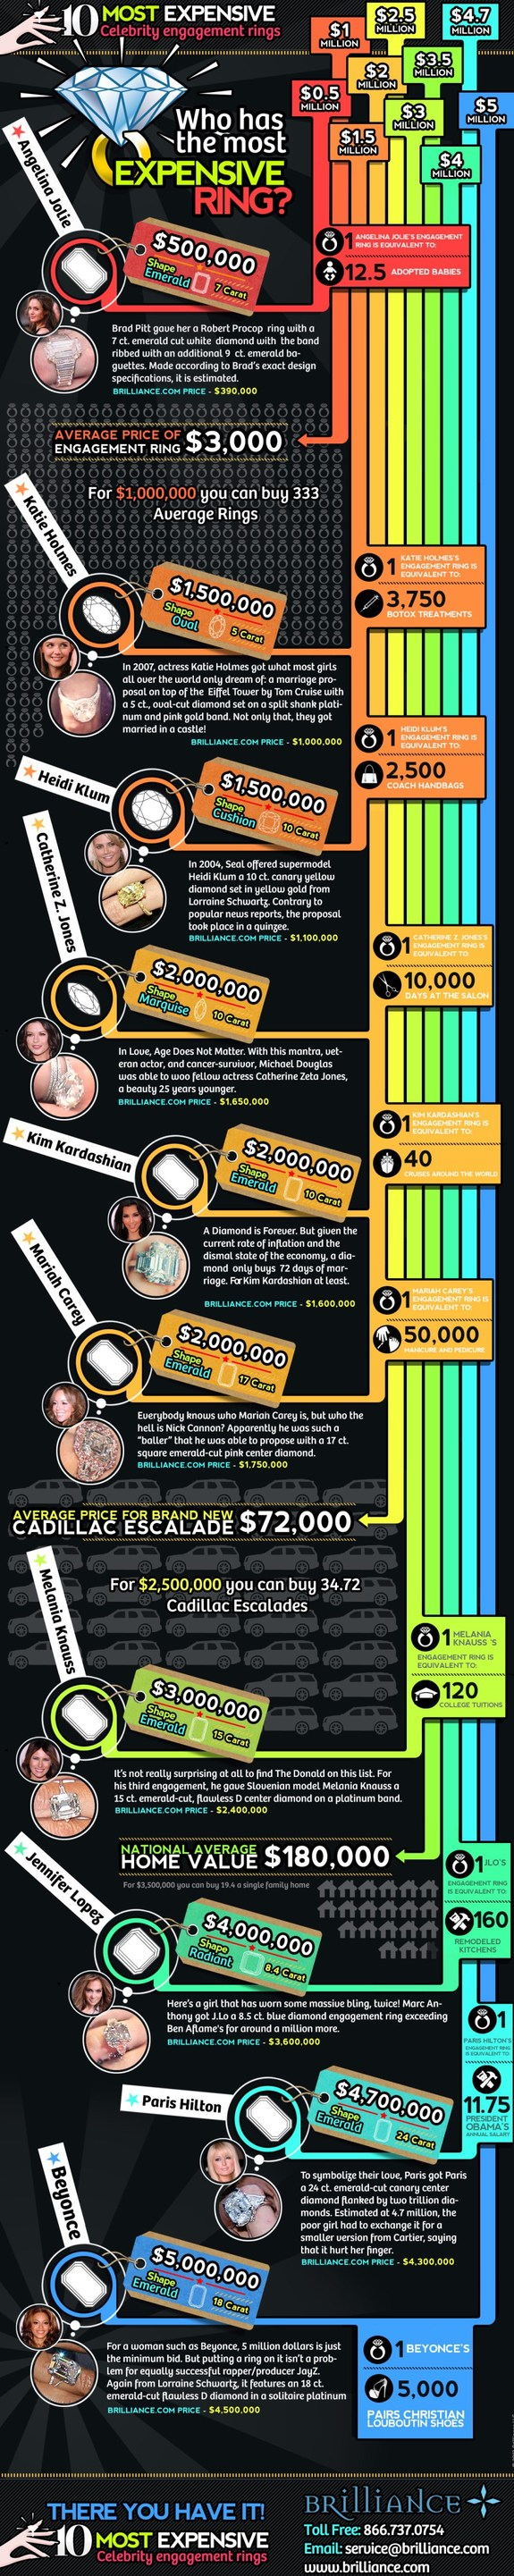 Expensive Celebrity Engagement Rings infographic